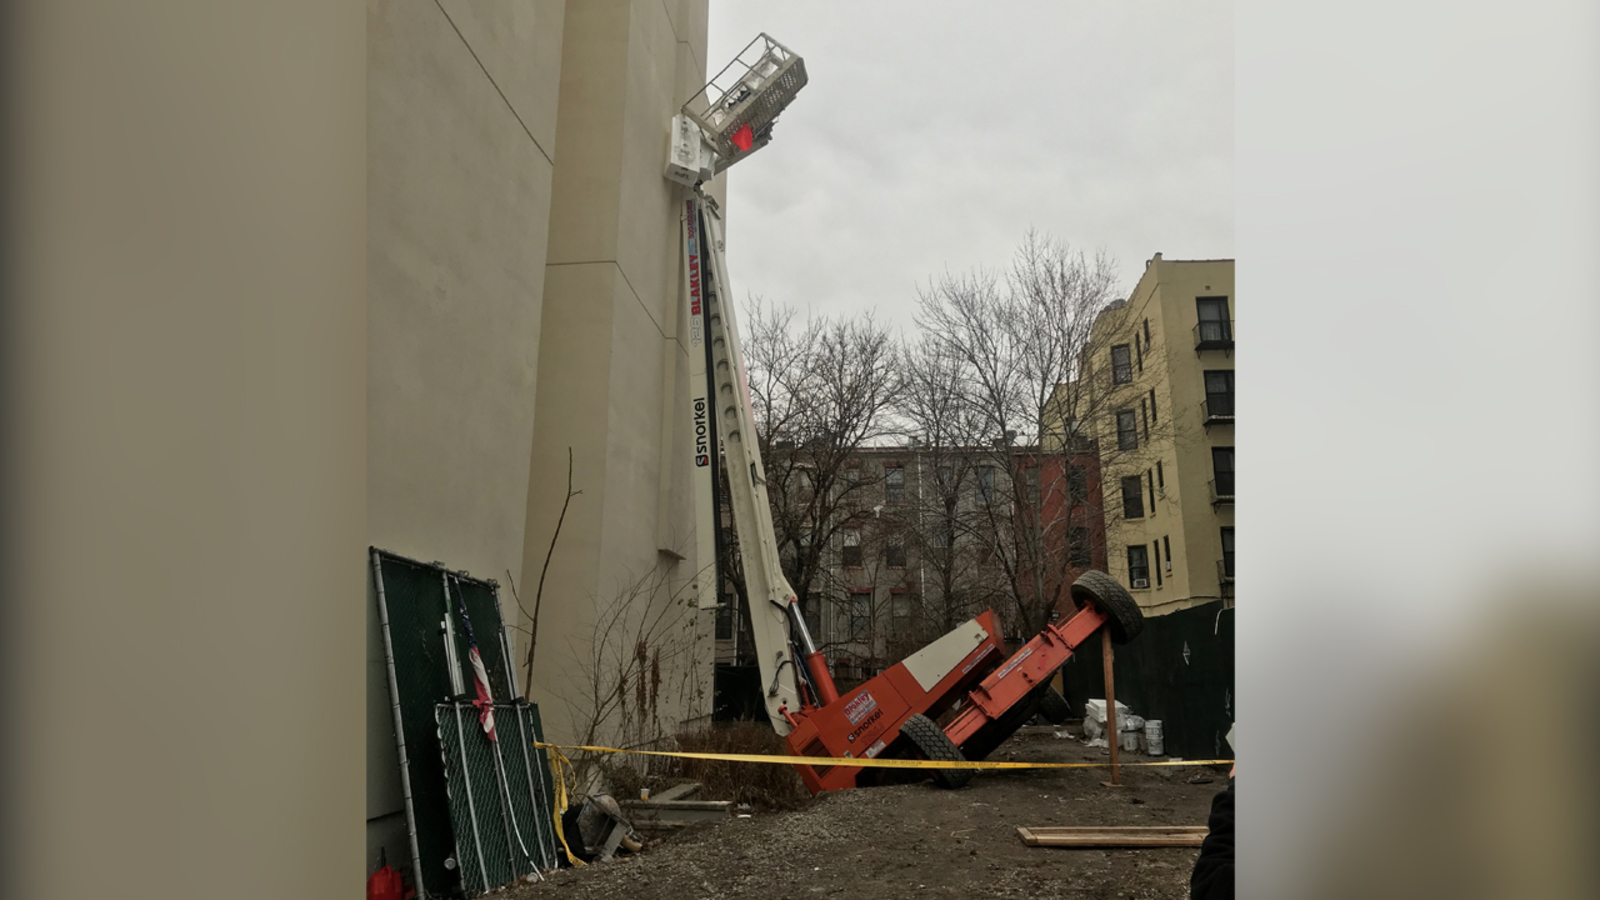 2 construction workers rescued after lift tilted into Harlem building